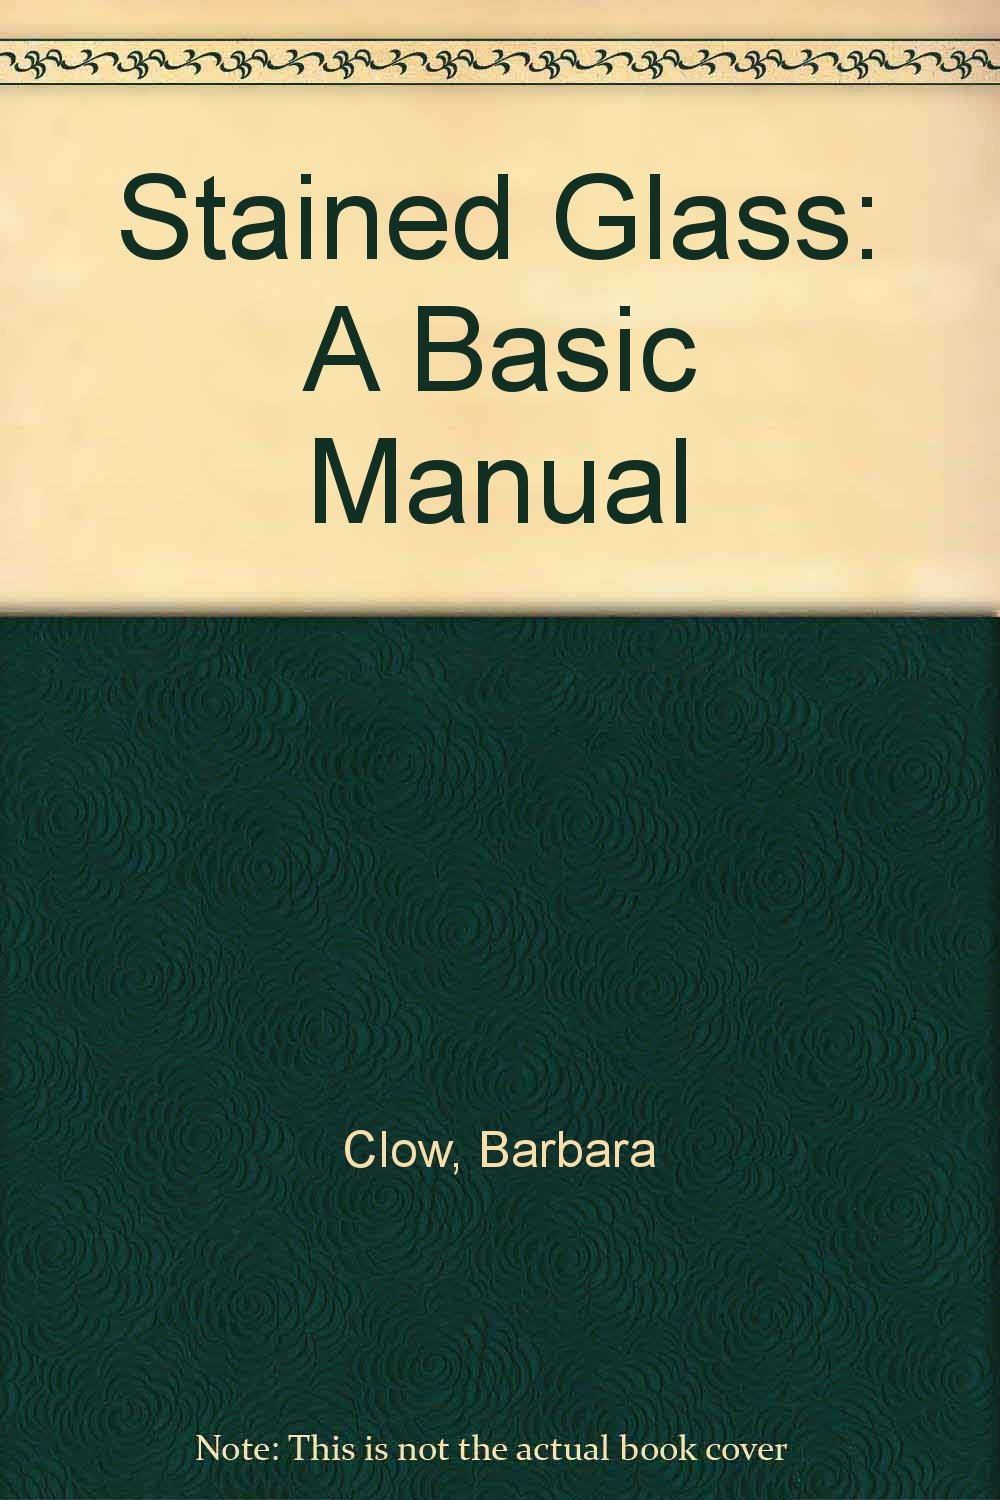 Stained Glass: A Basic Manual